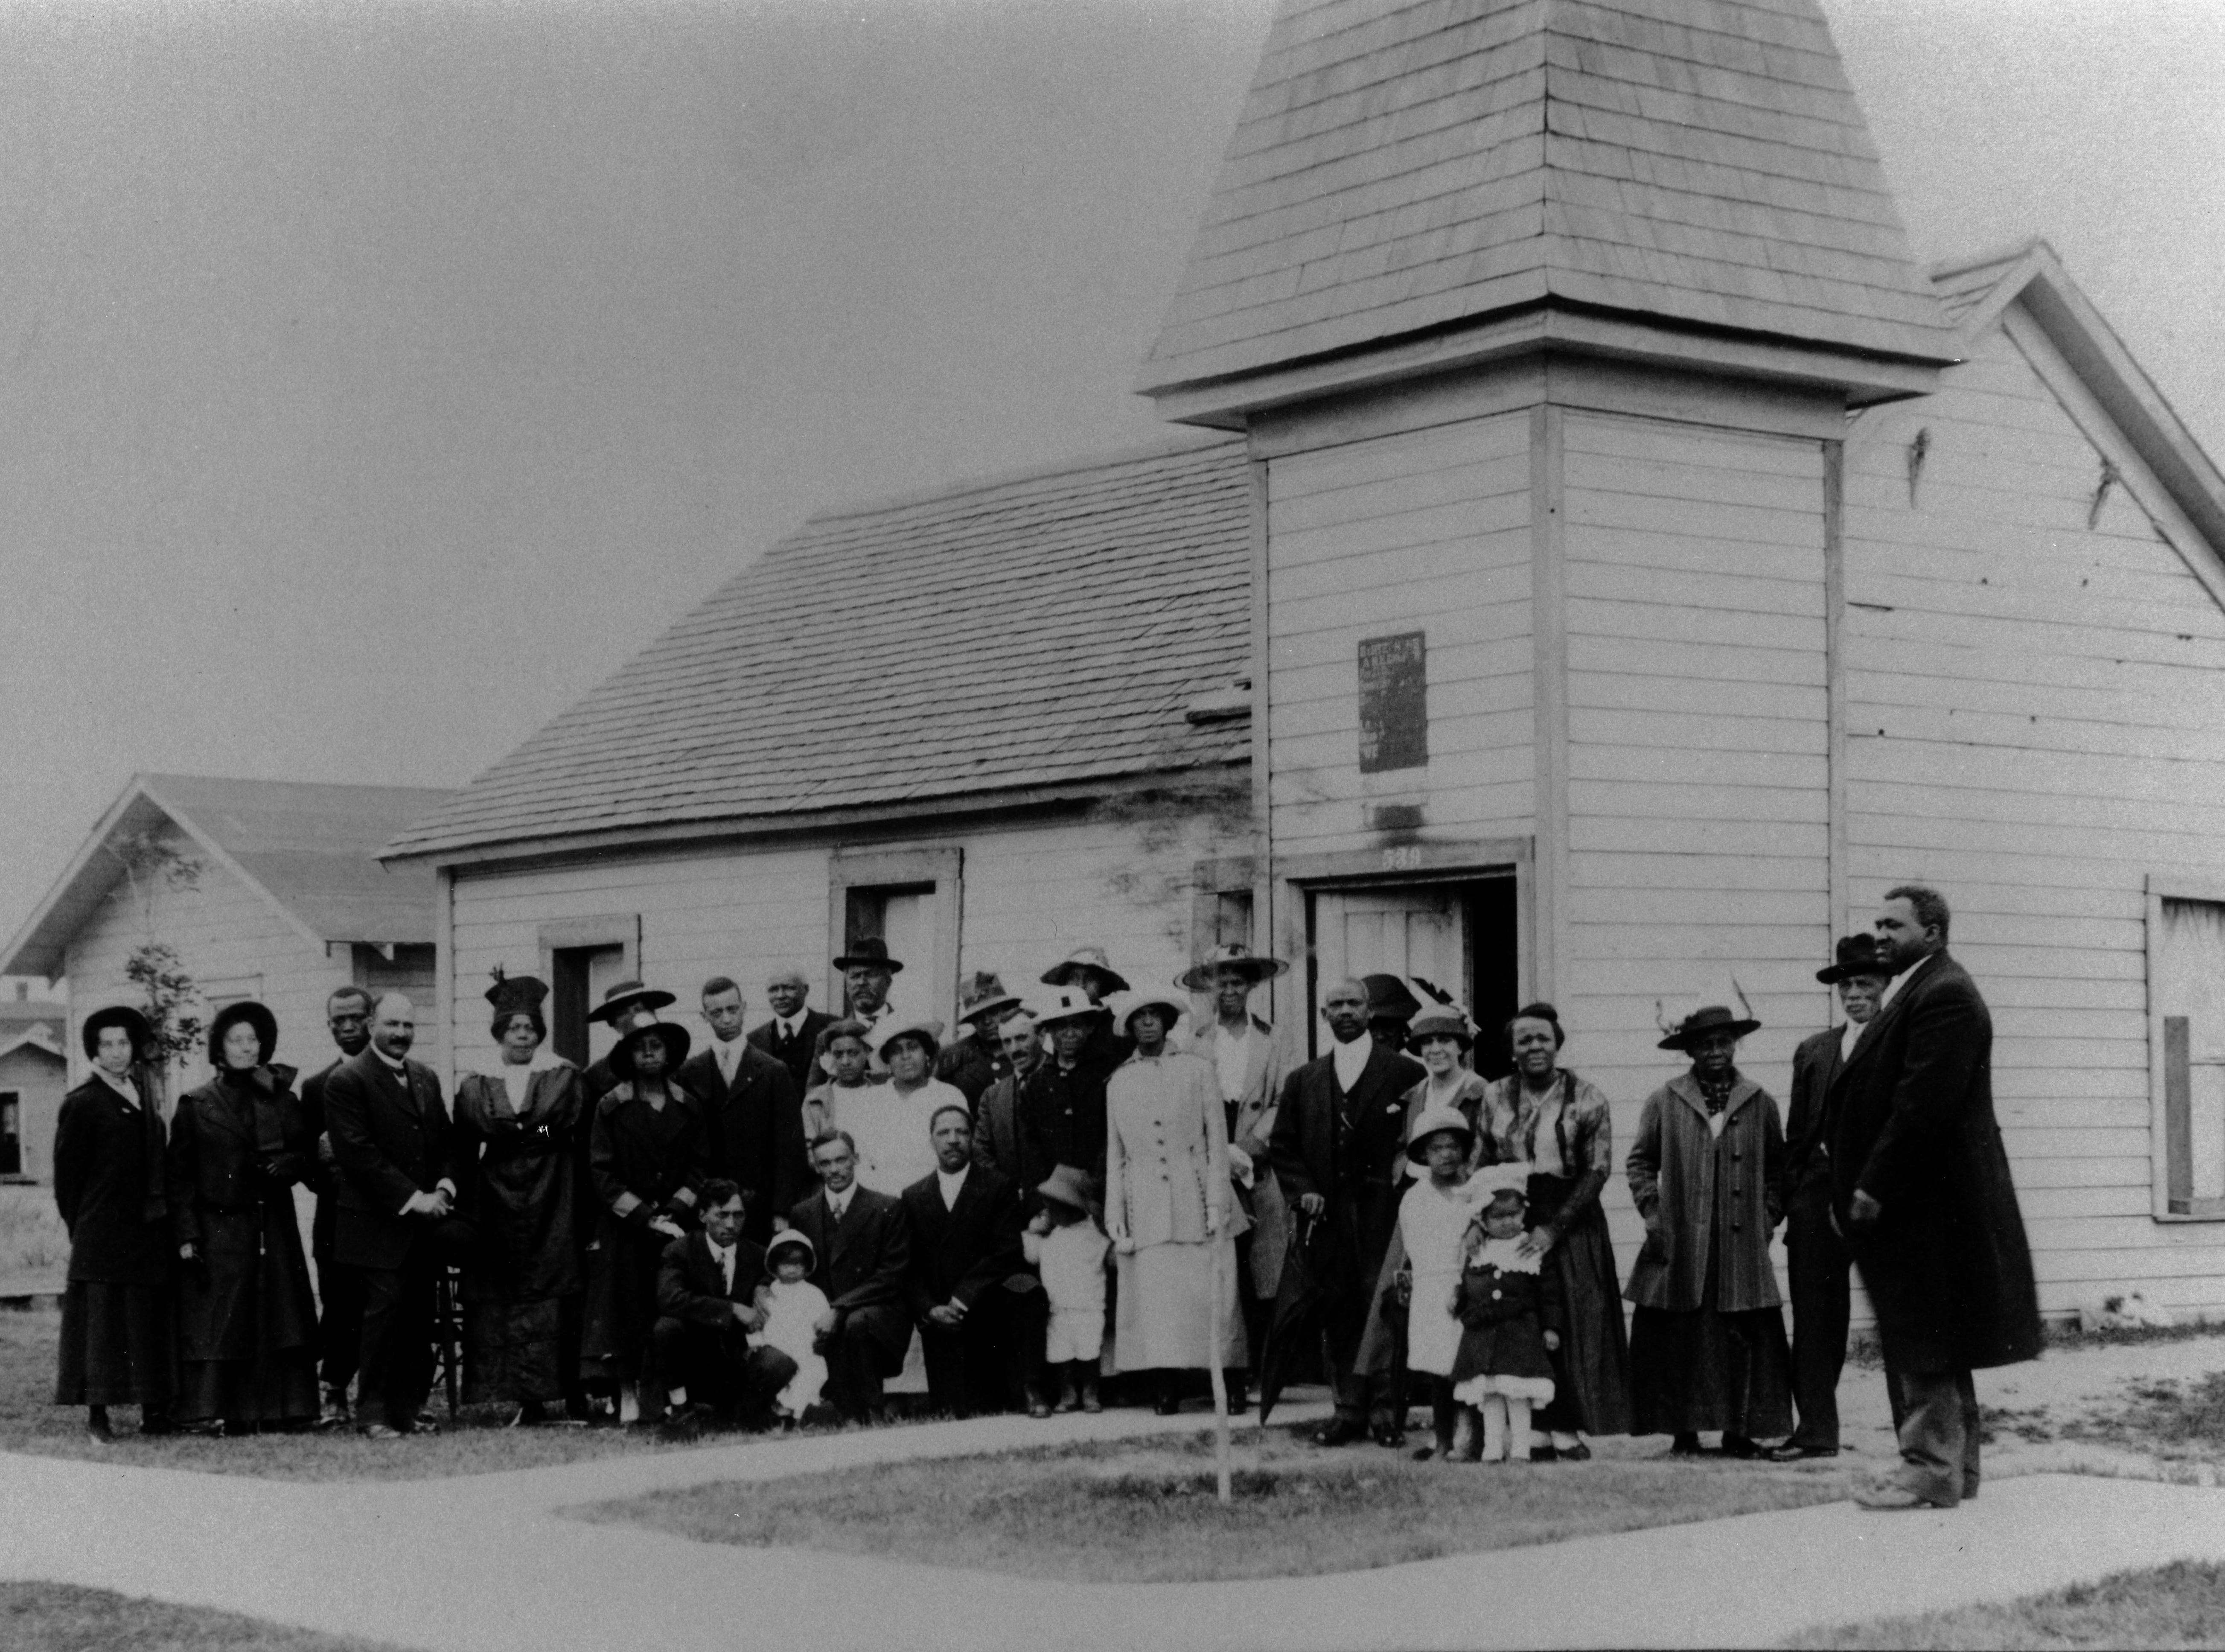 The congregation of the African Methodist Episcopal Church gathers in front of its original building in 1916 before it was torn down to make way for a new church, which still stands today at 916 5th ave. s.